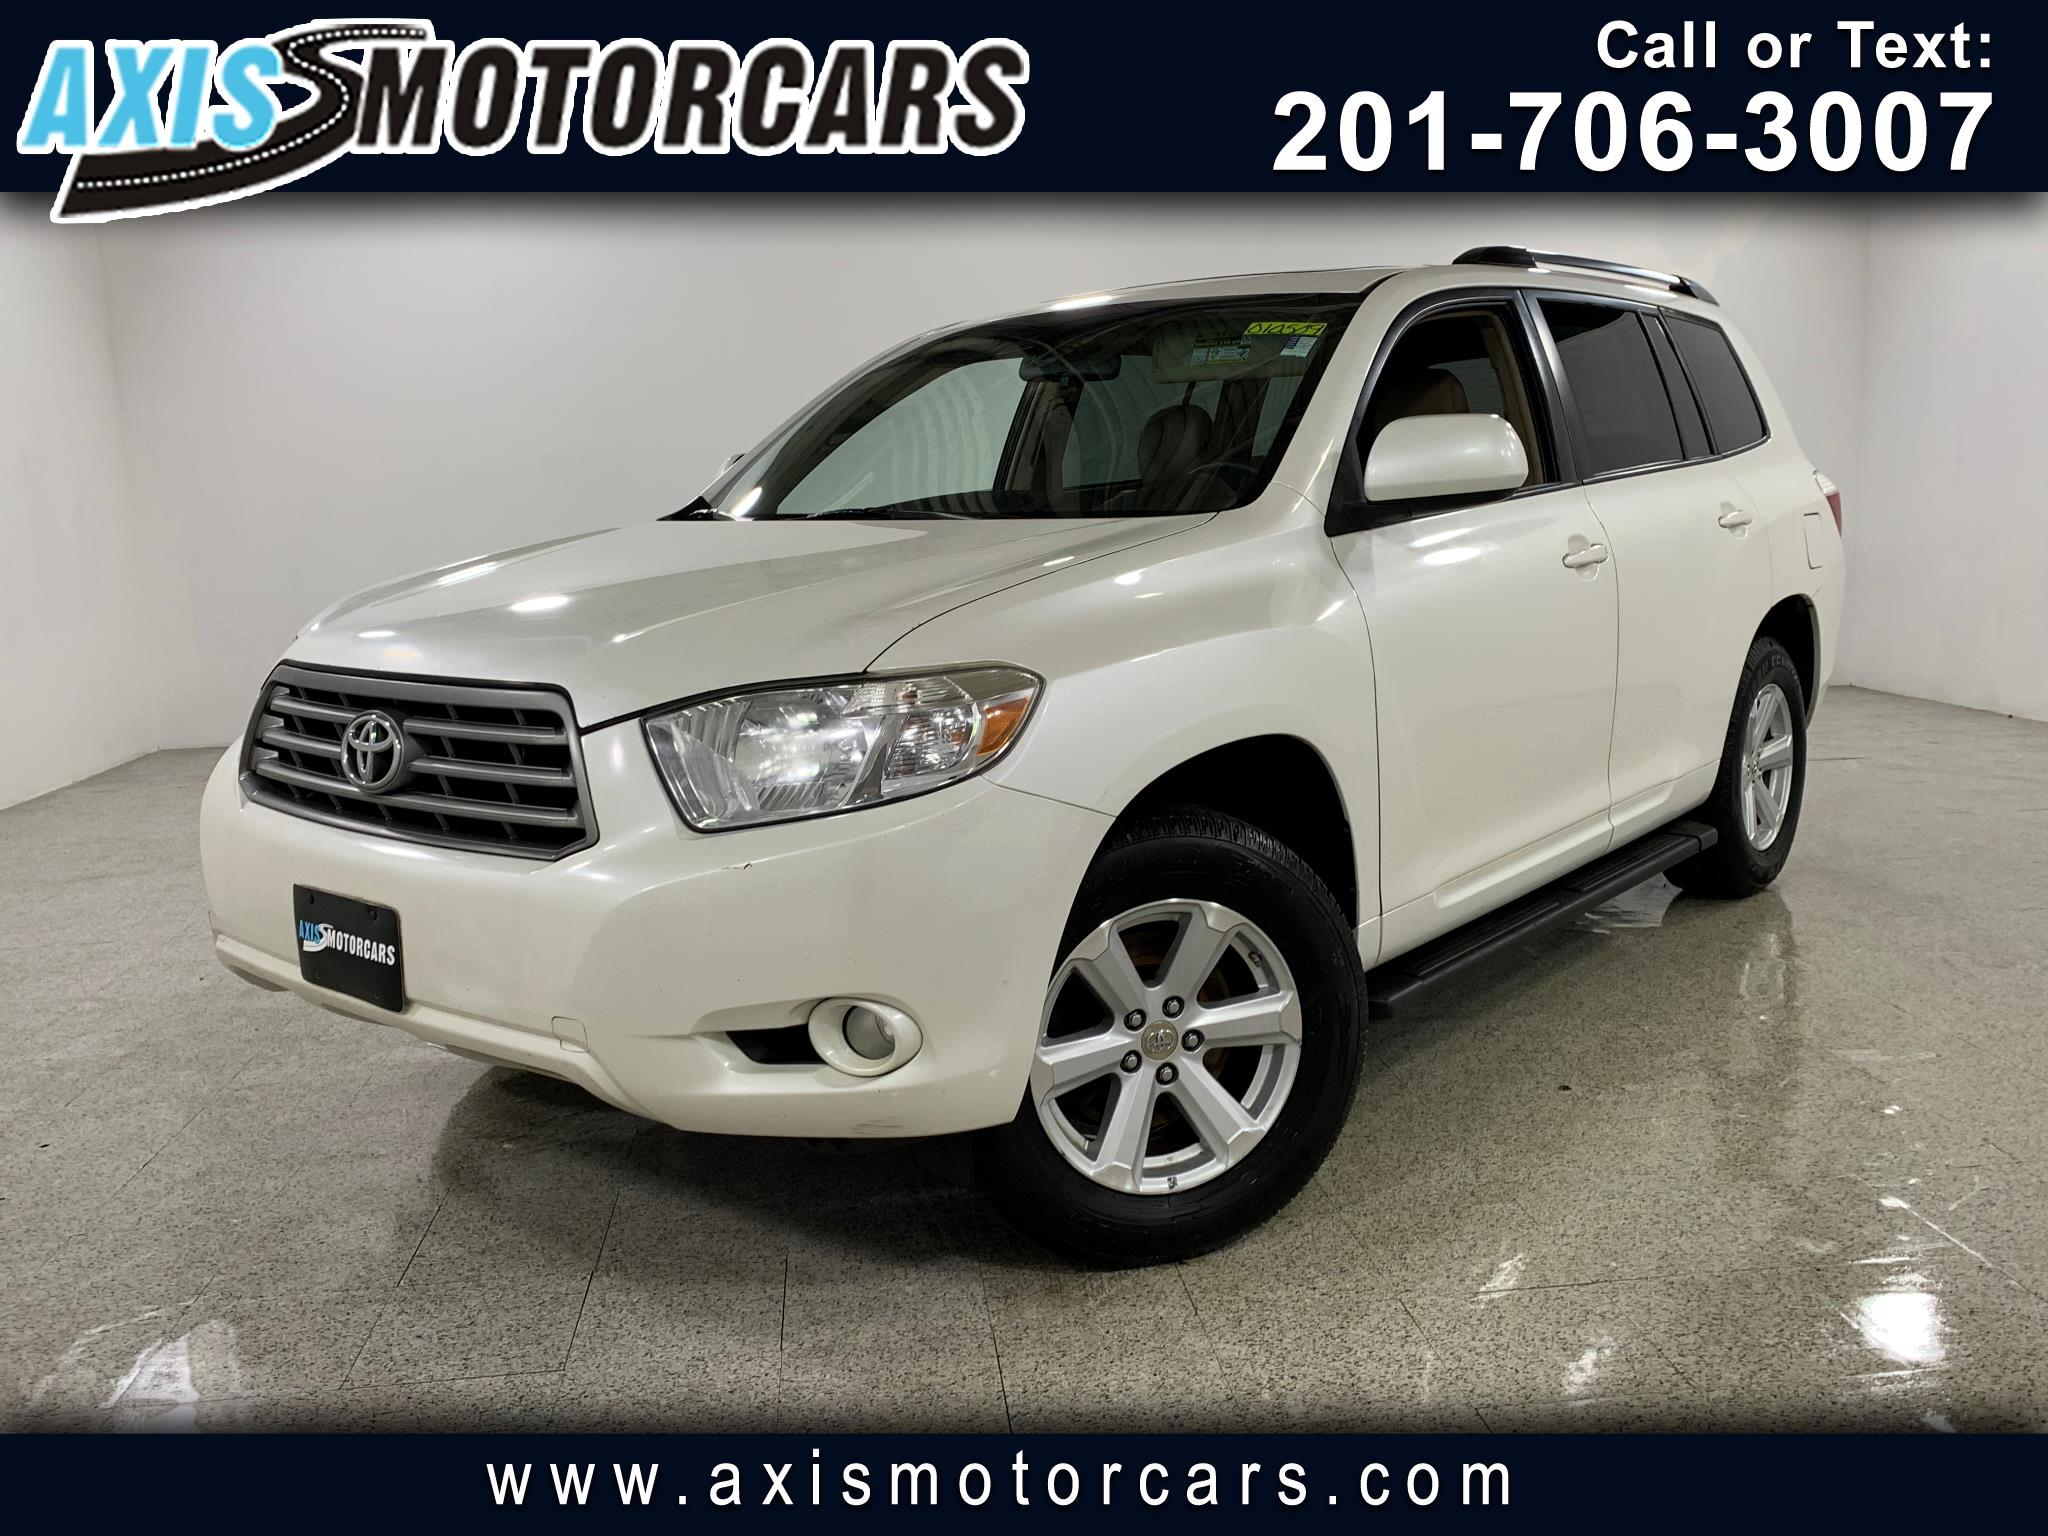 2010 Toyota Highlander SE w/Sunroof Bakup Camera Leather